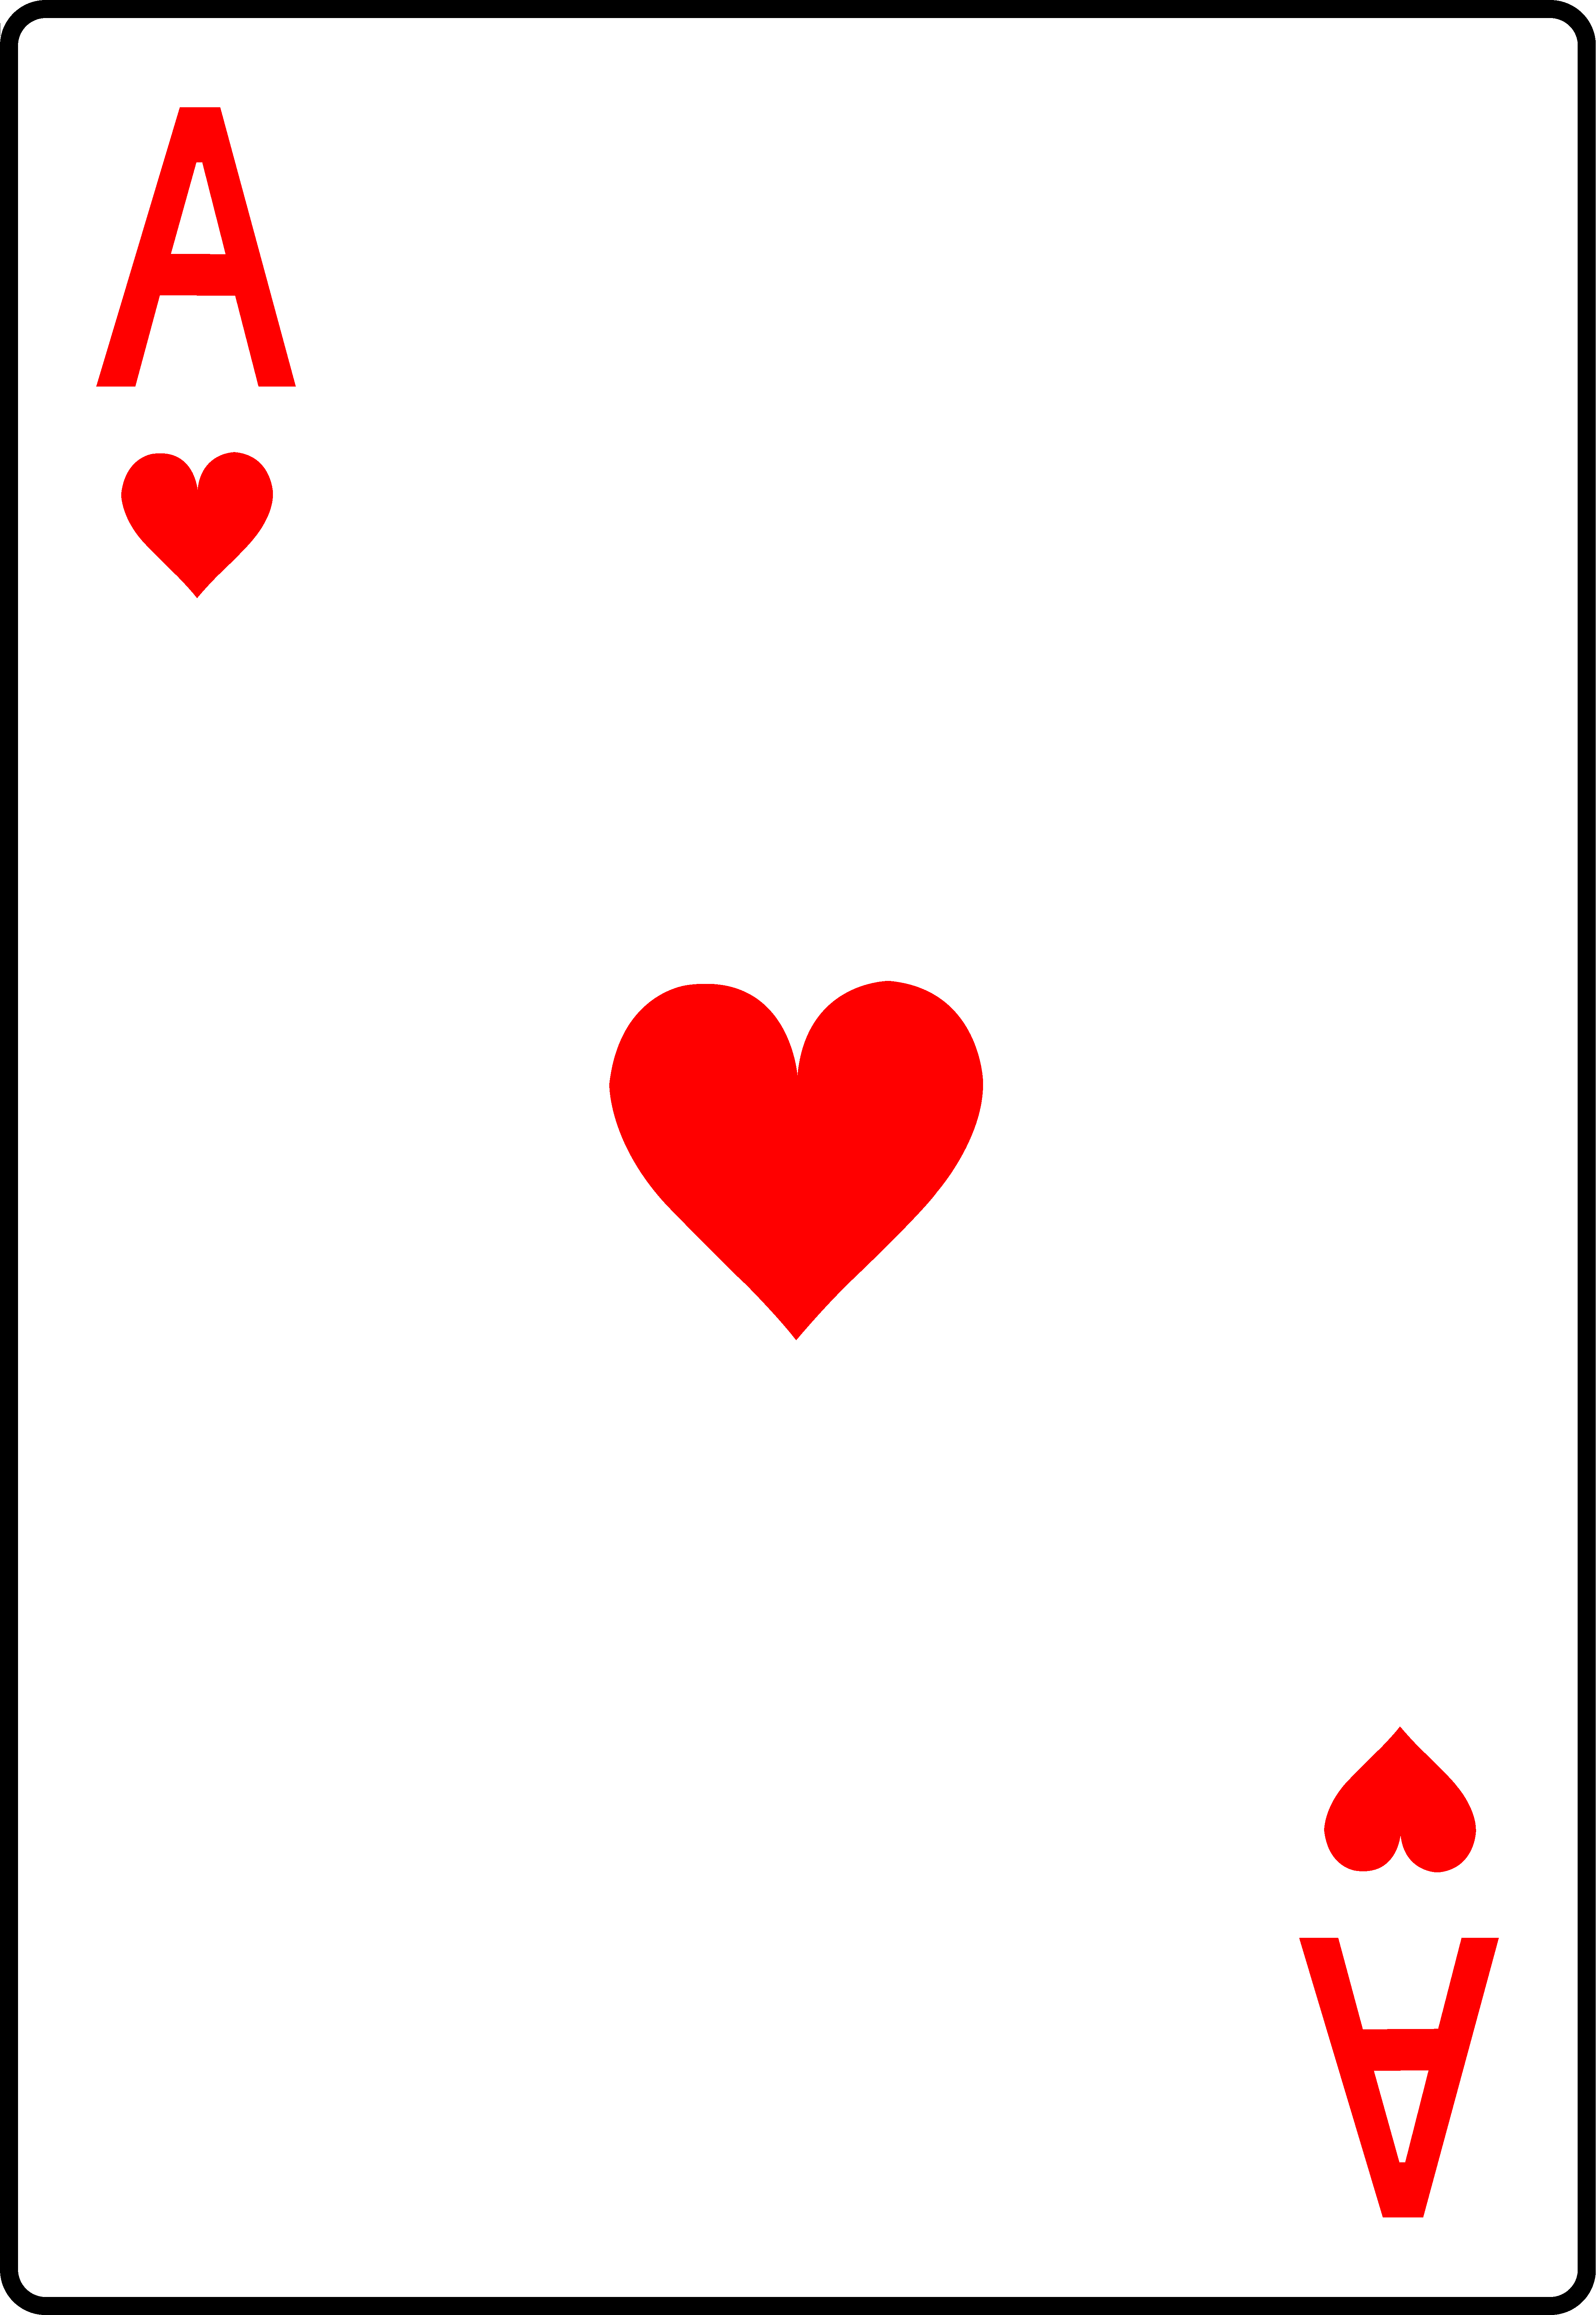 Is This Your Card With Images Ace Card Hearts Playing Cards Ace Of Hearts - Herz Ass